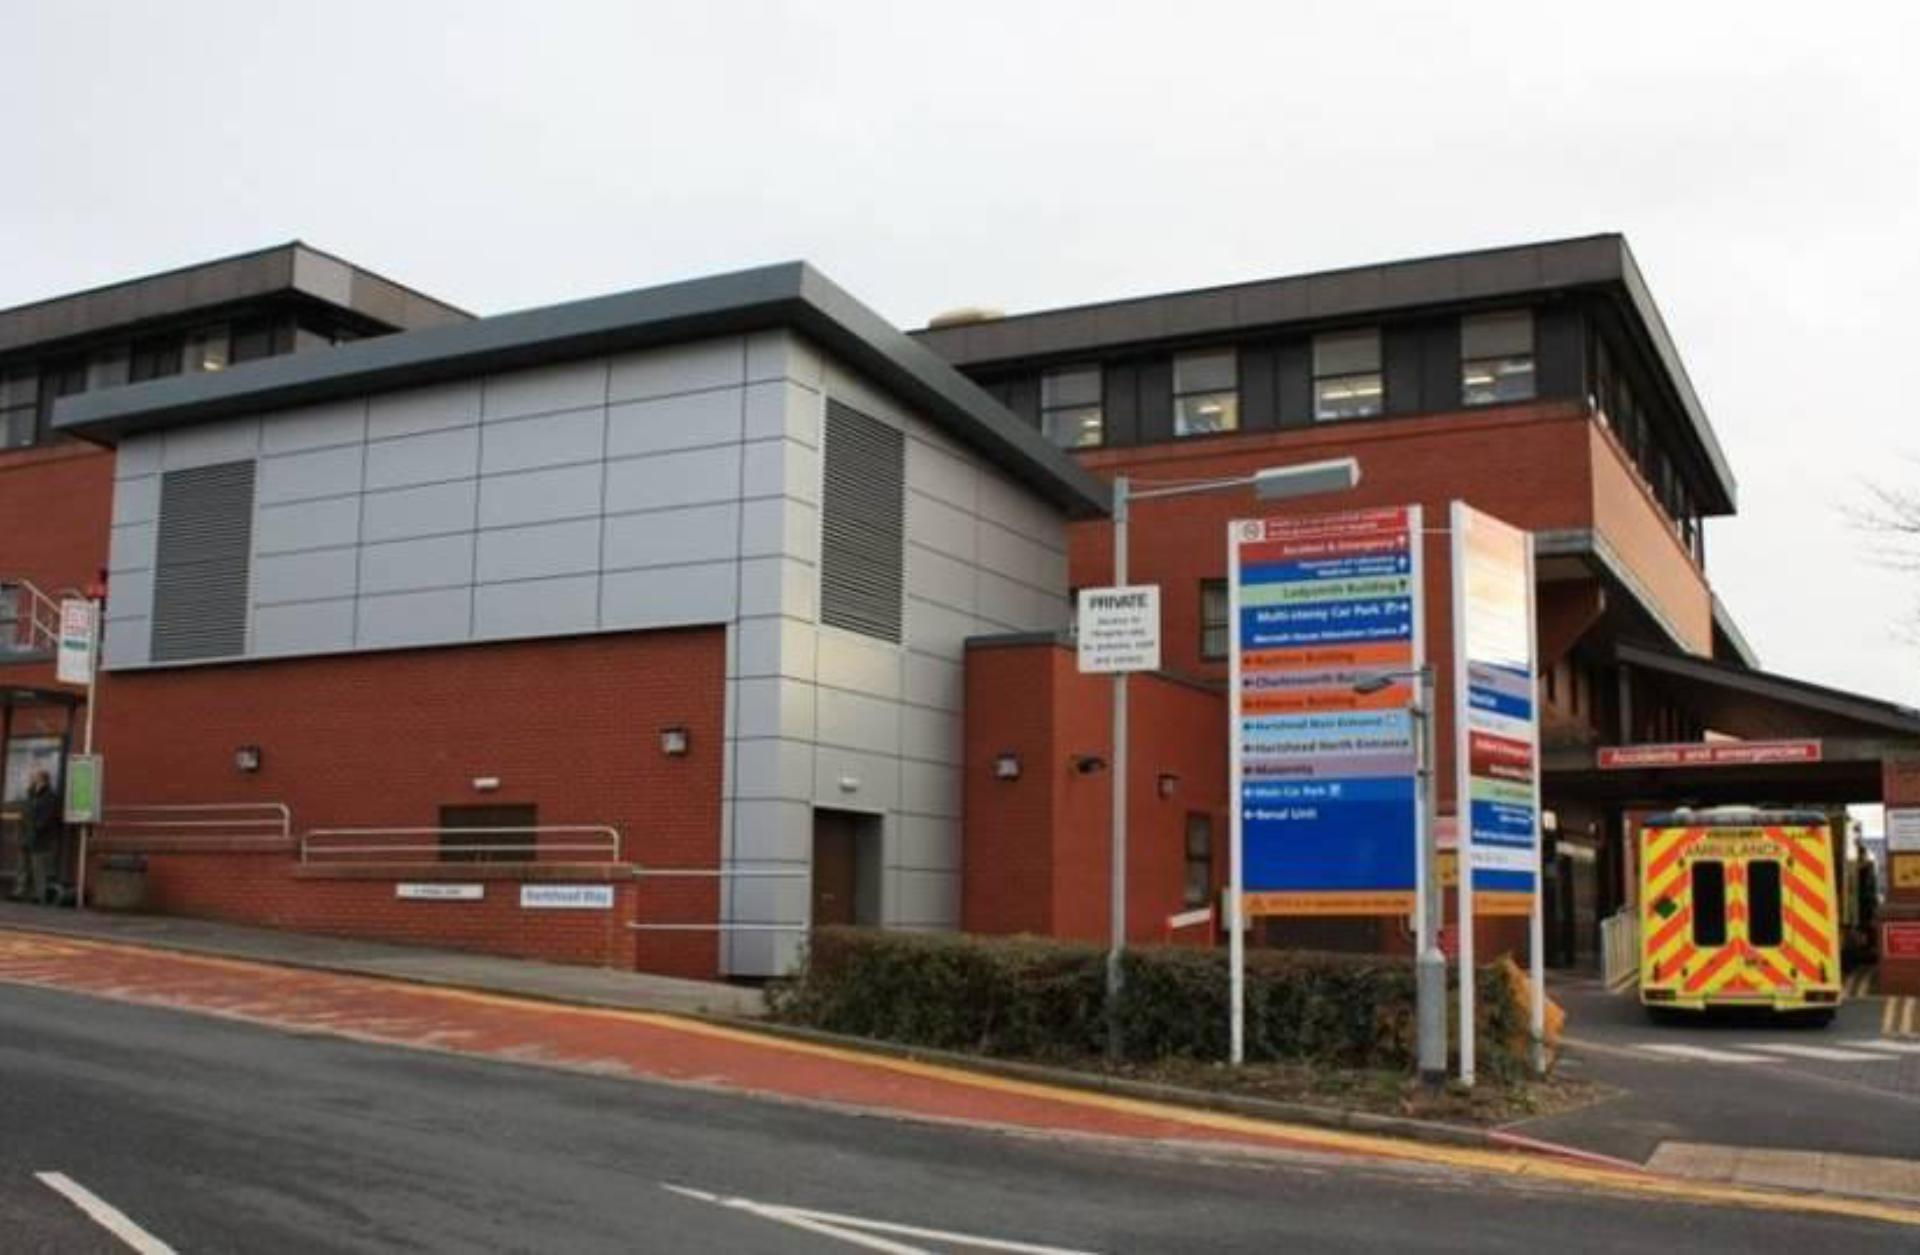 exterior of Tameside General Hospital